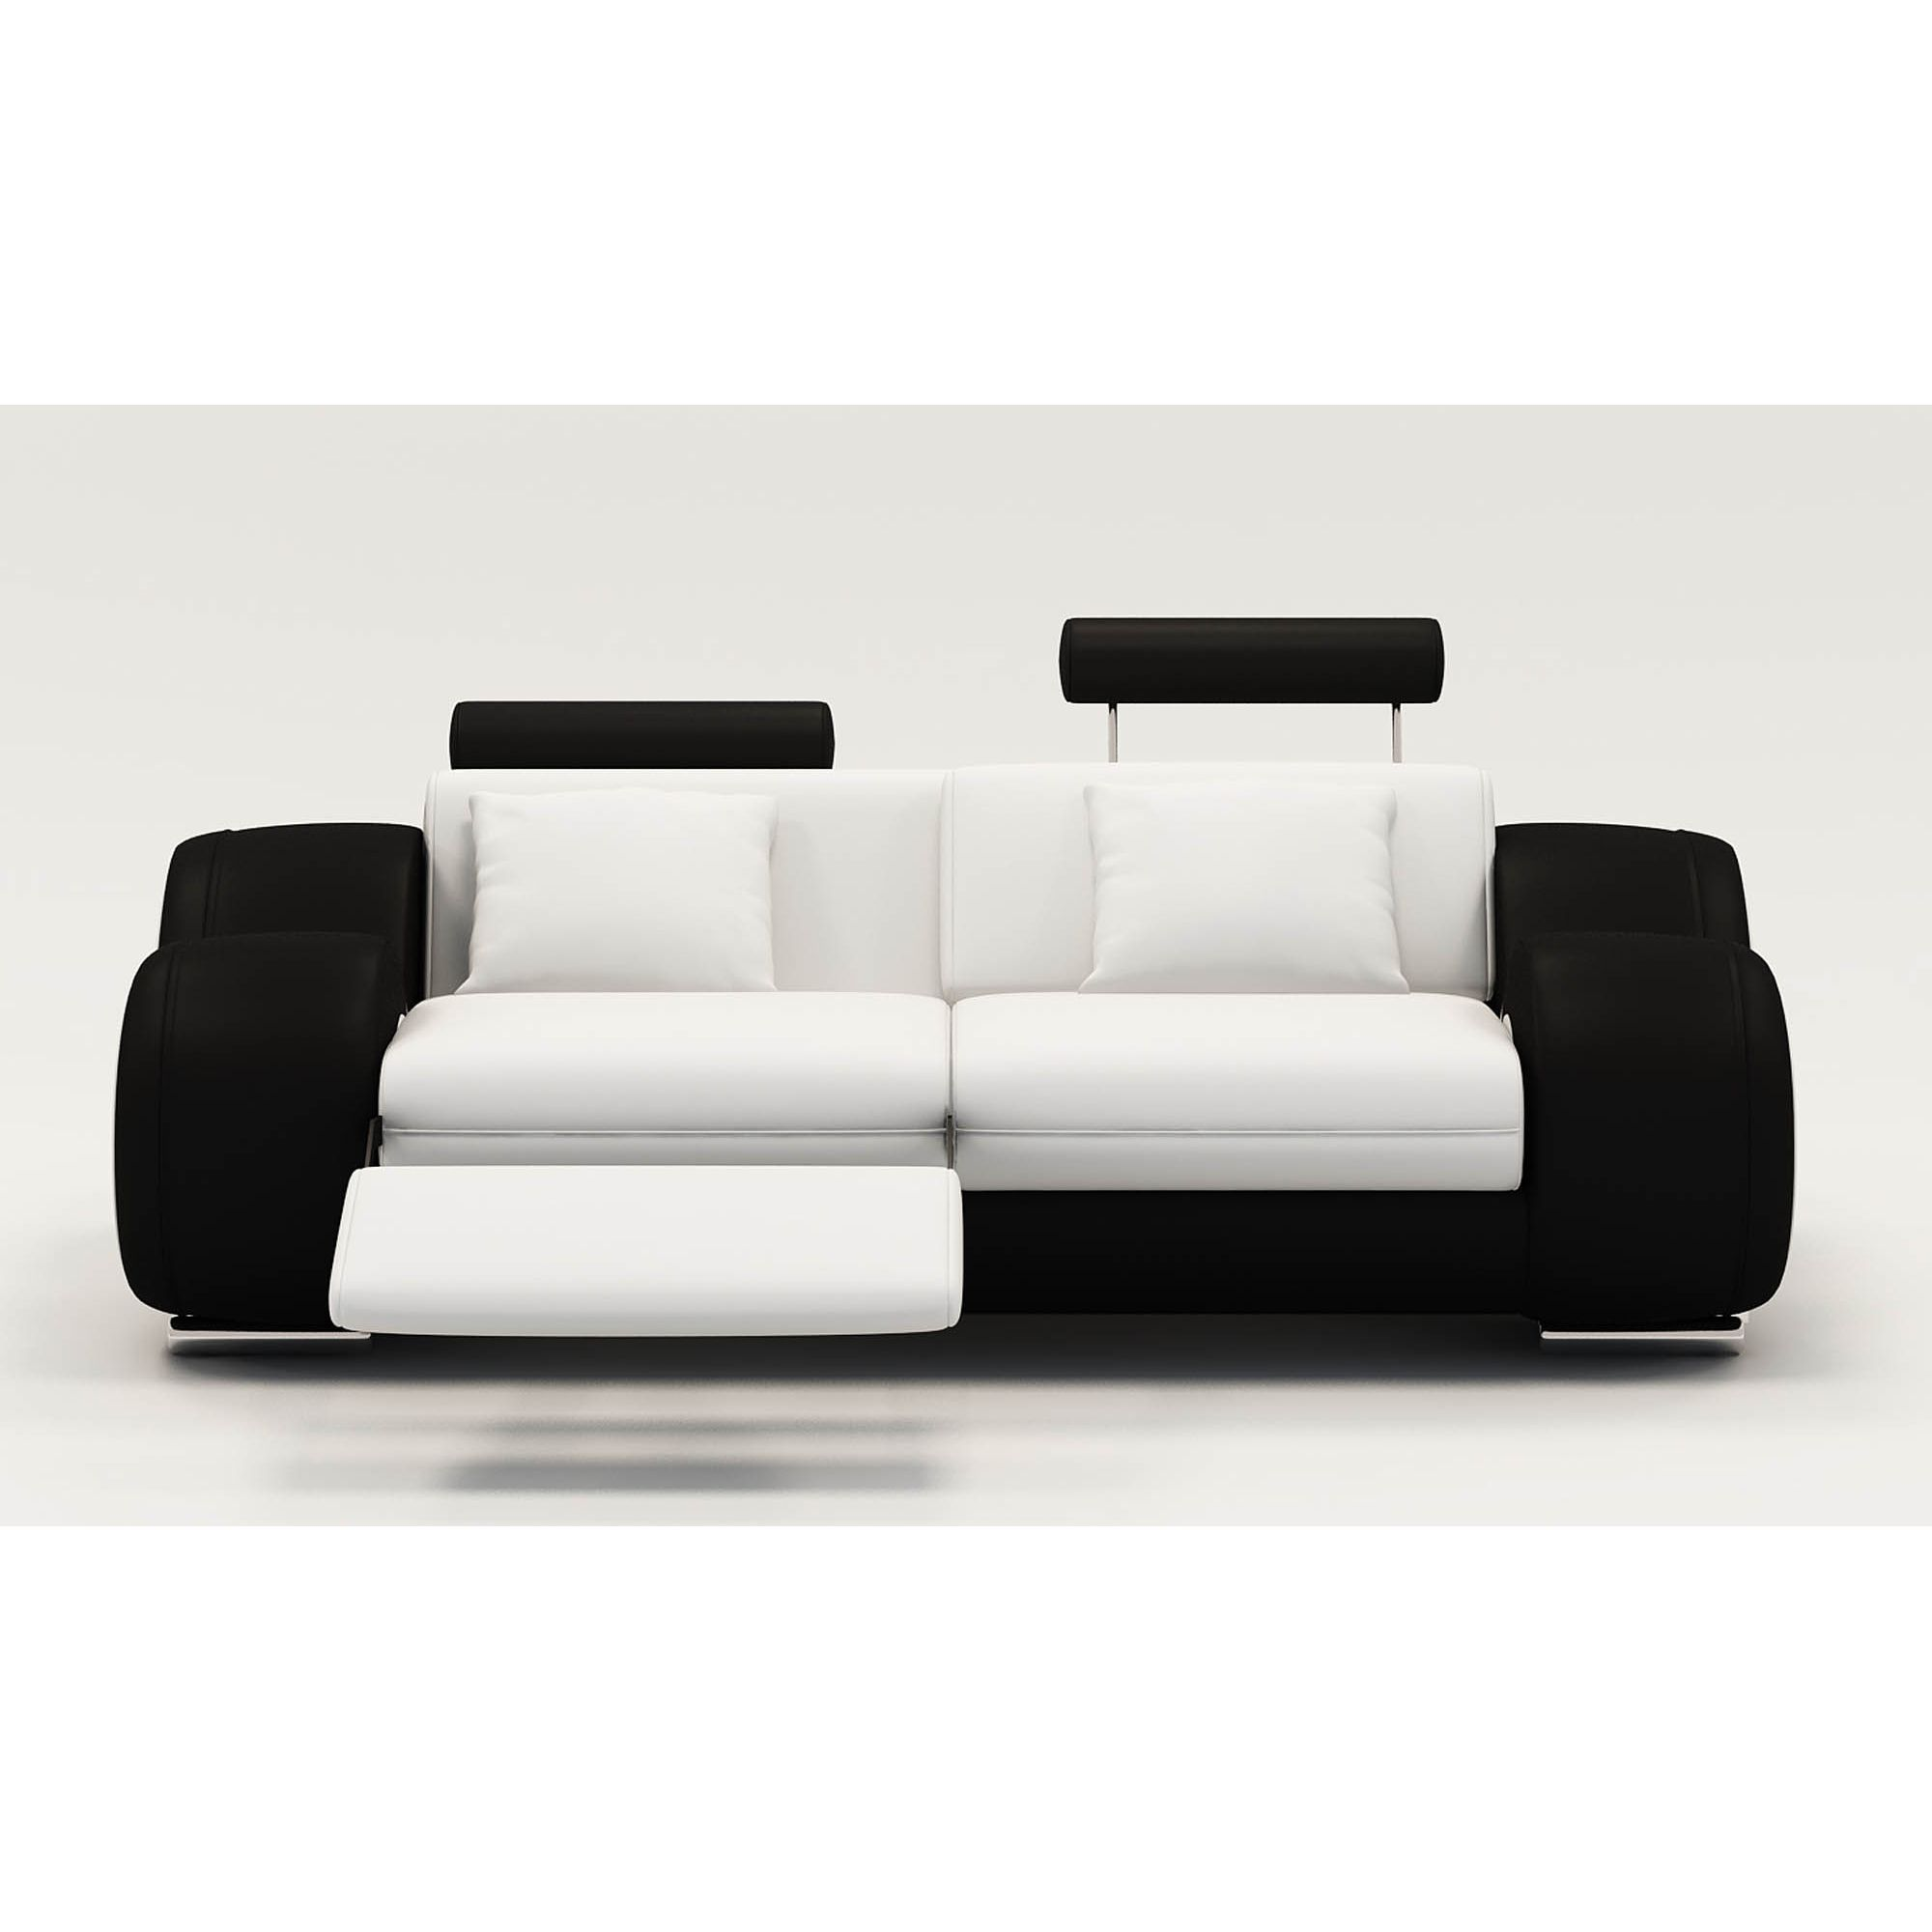 Fauteuils Noir Et Blanc Deco In Paris Ensemble Canape Relax Design 3 2 1 Places